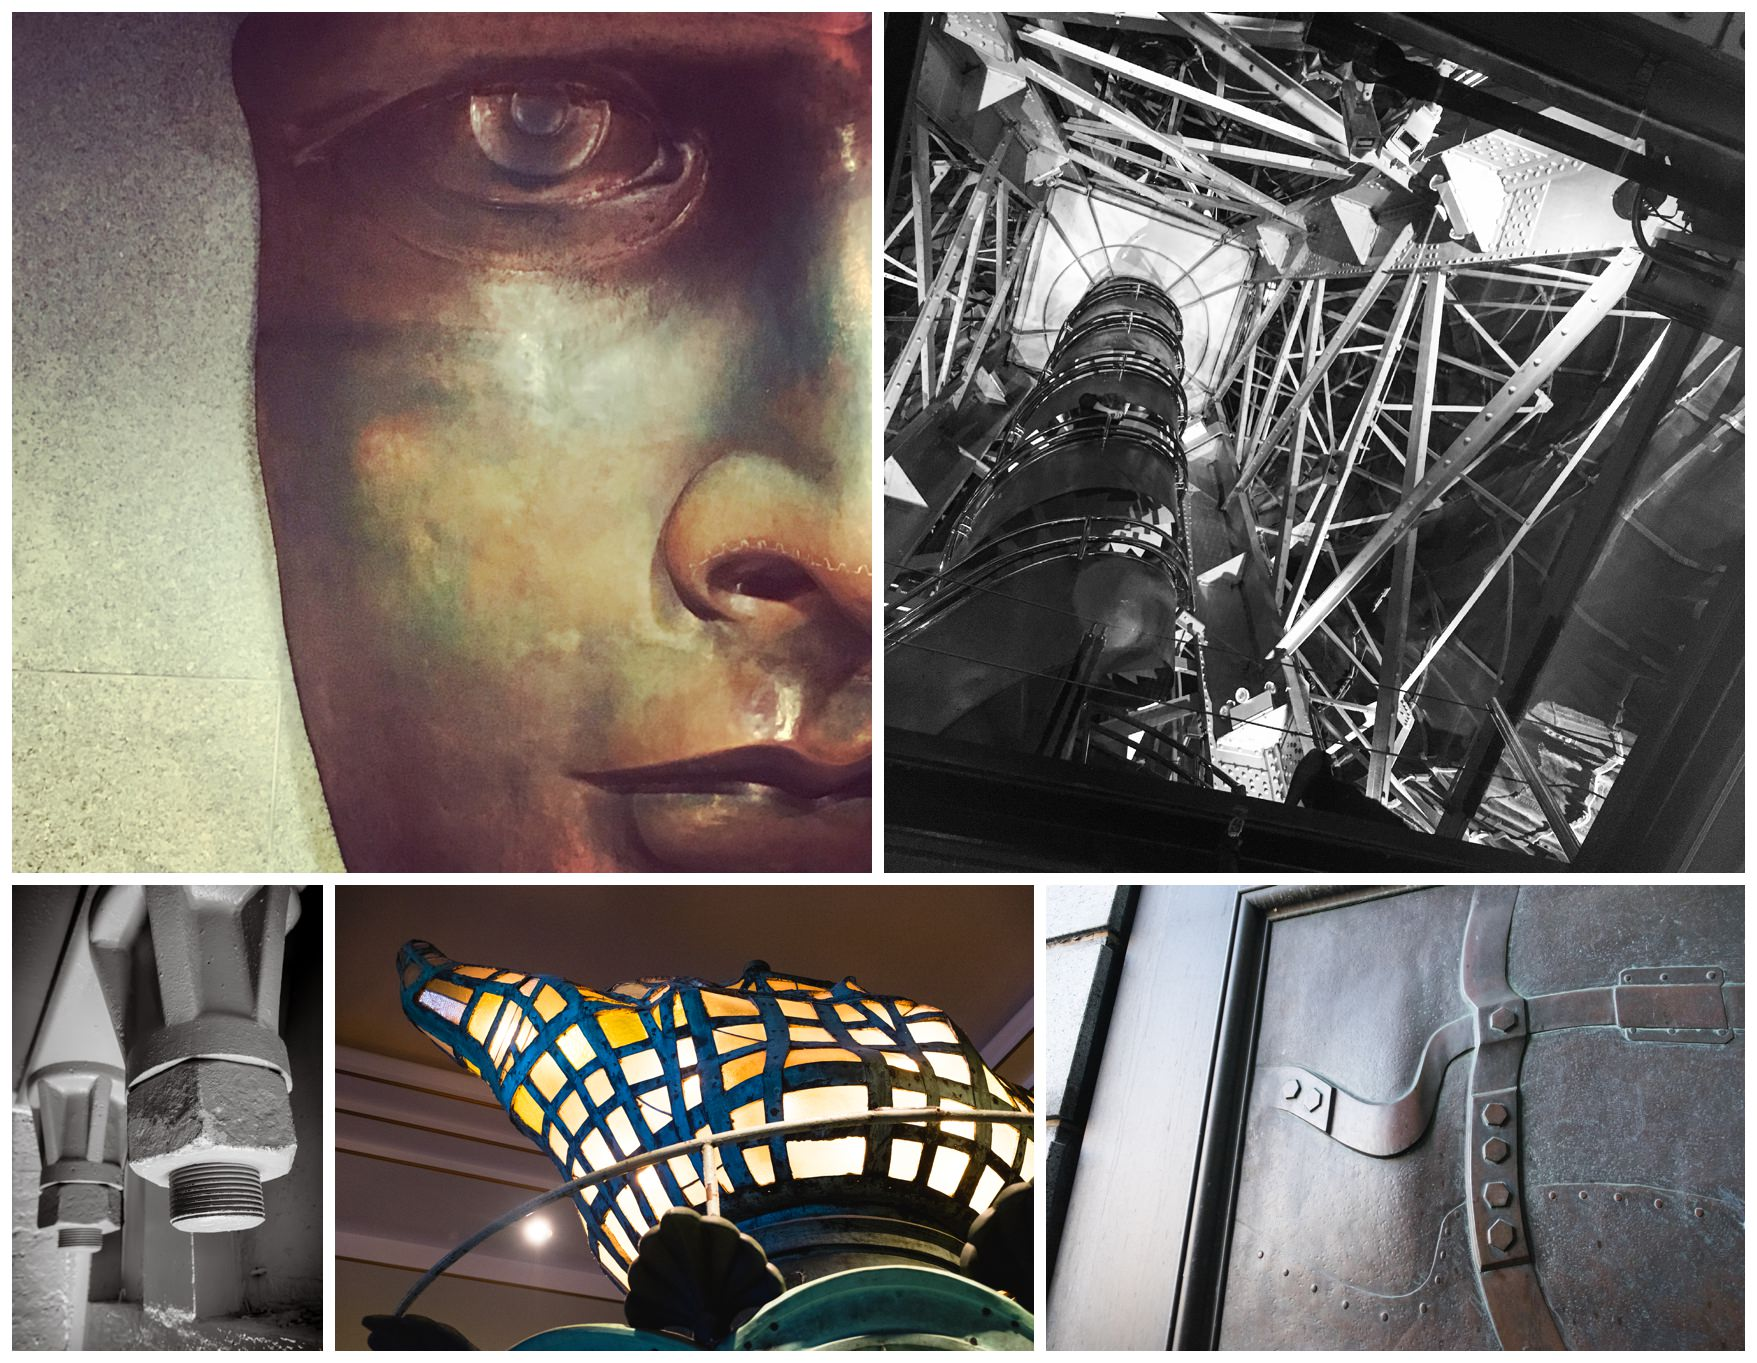 a montage of images showing the inside of the statue of iliberty